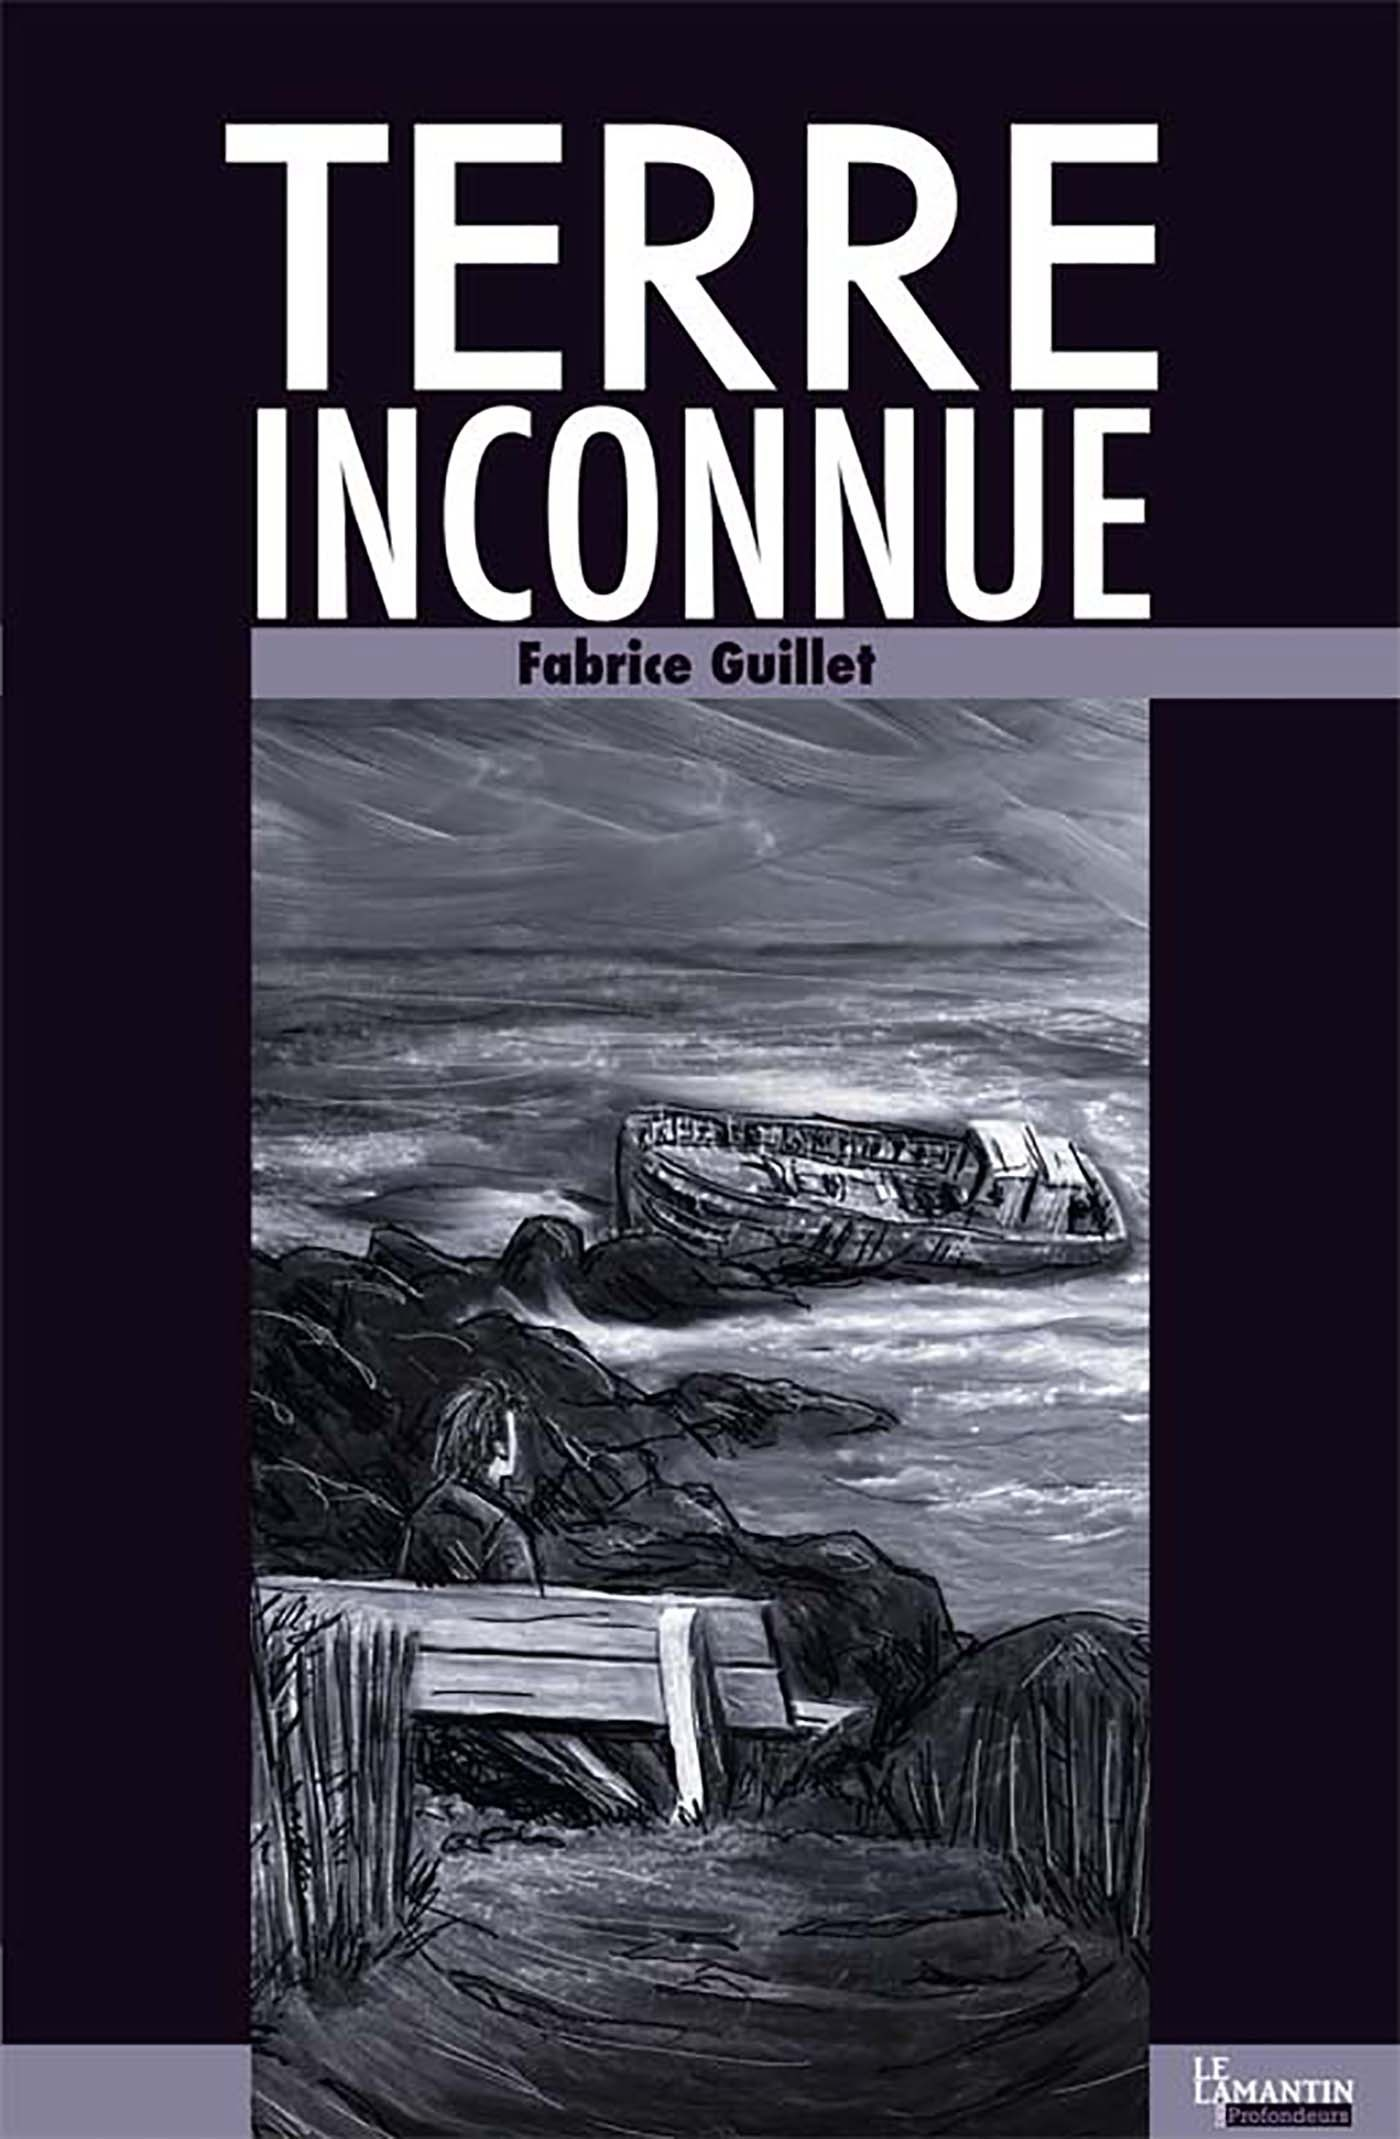 Terre inconnue  - Fabrice Guillet